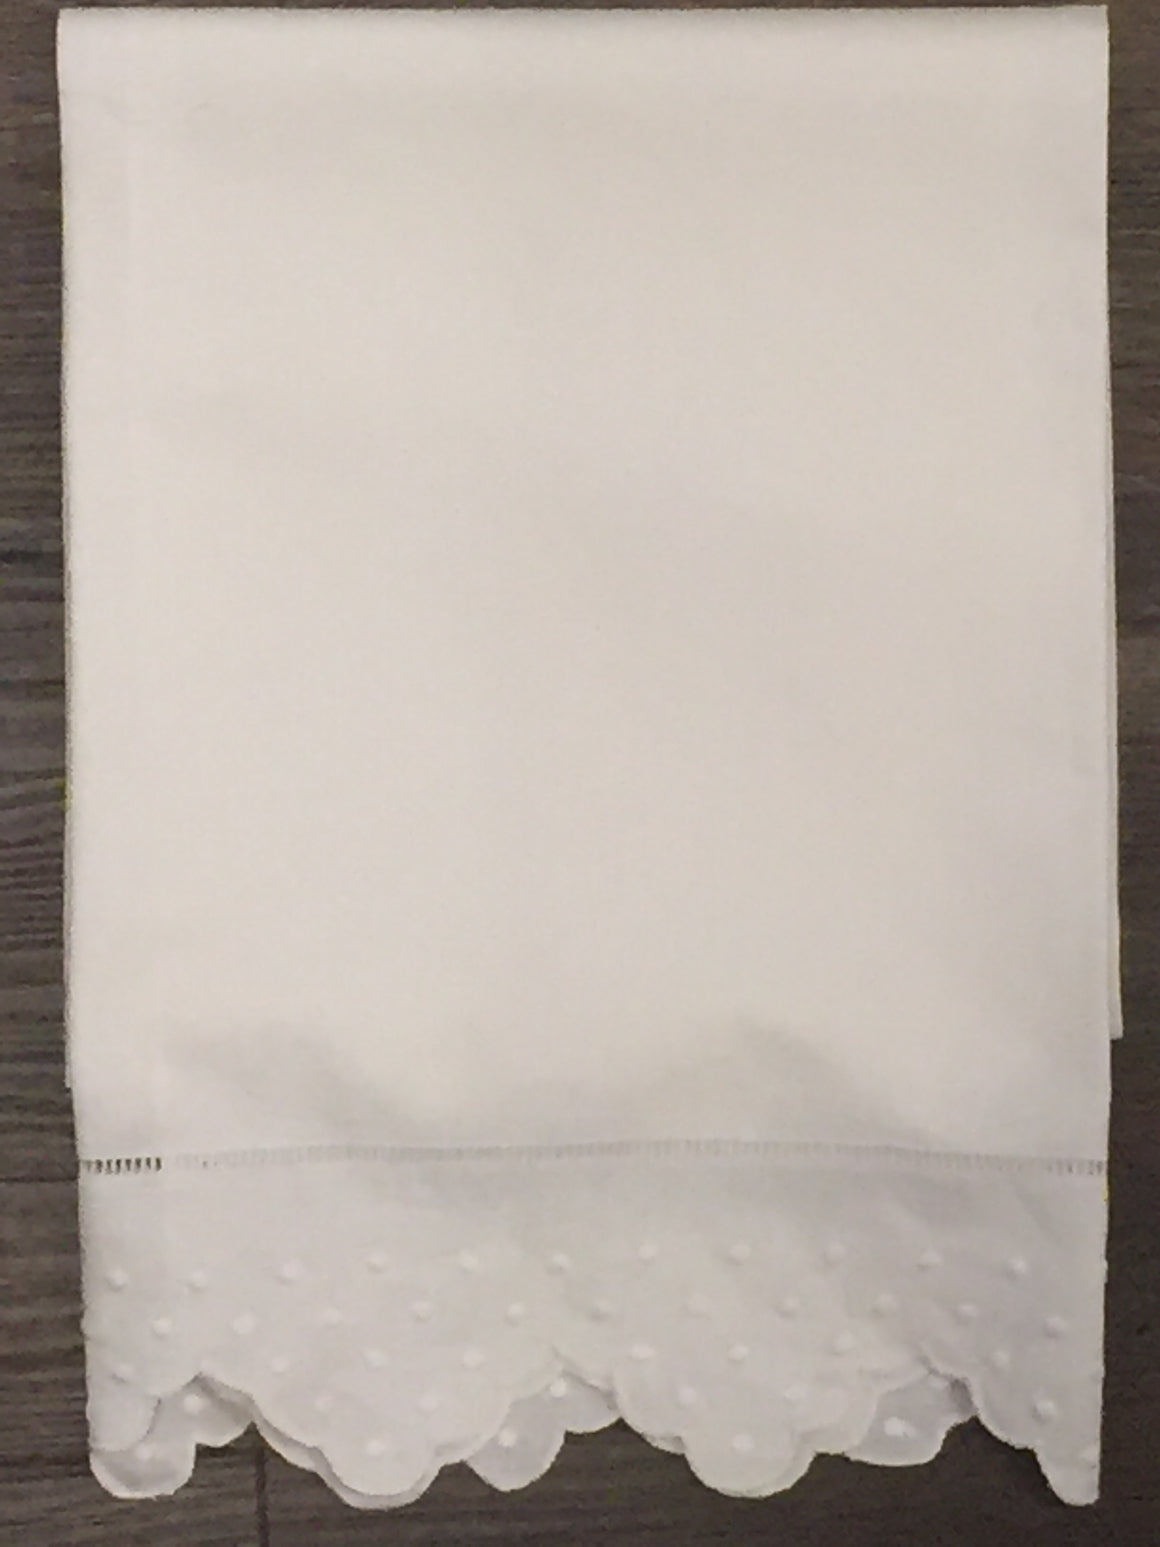 Euro-sized Scalloped Edge Guest Towel